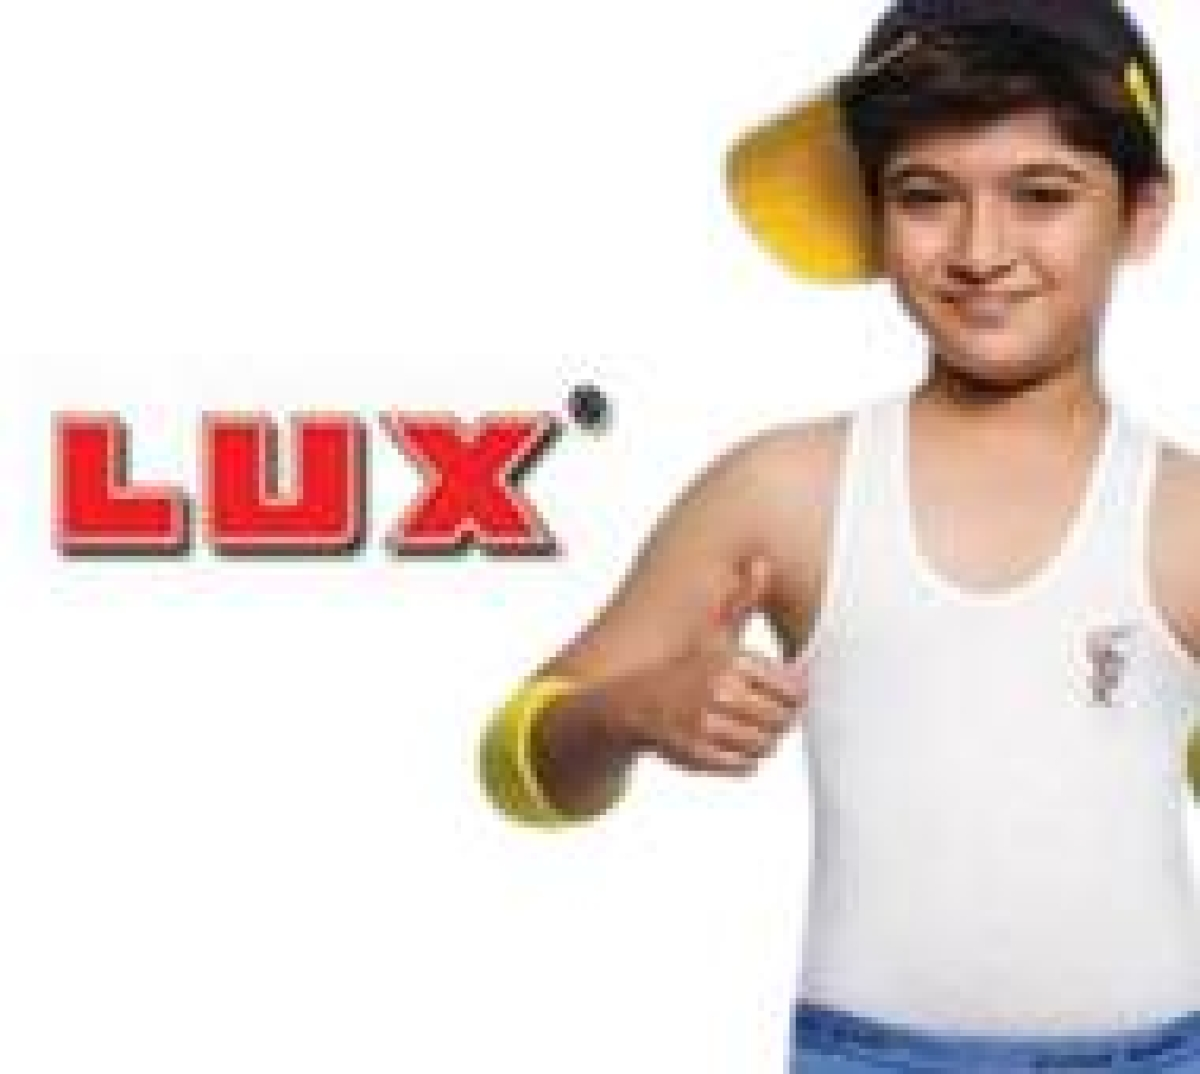 Lux Industries' share price surges 11% to hit a new high on Q4 profit